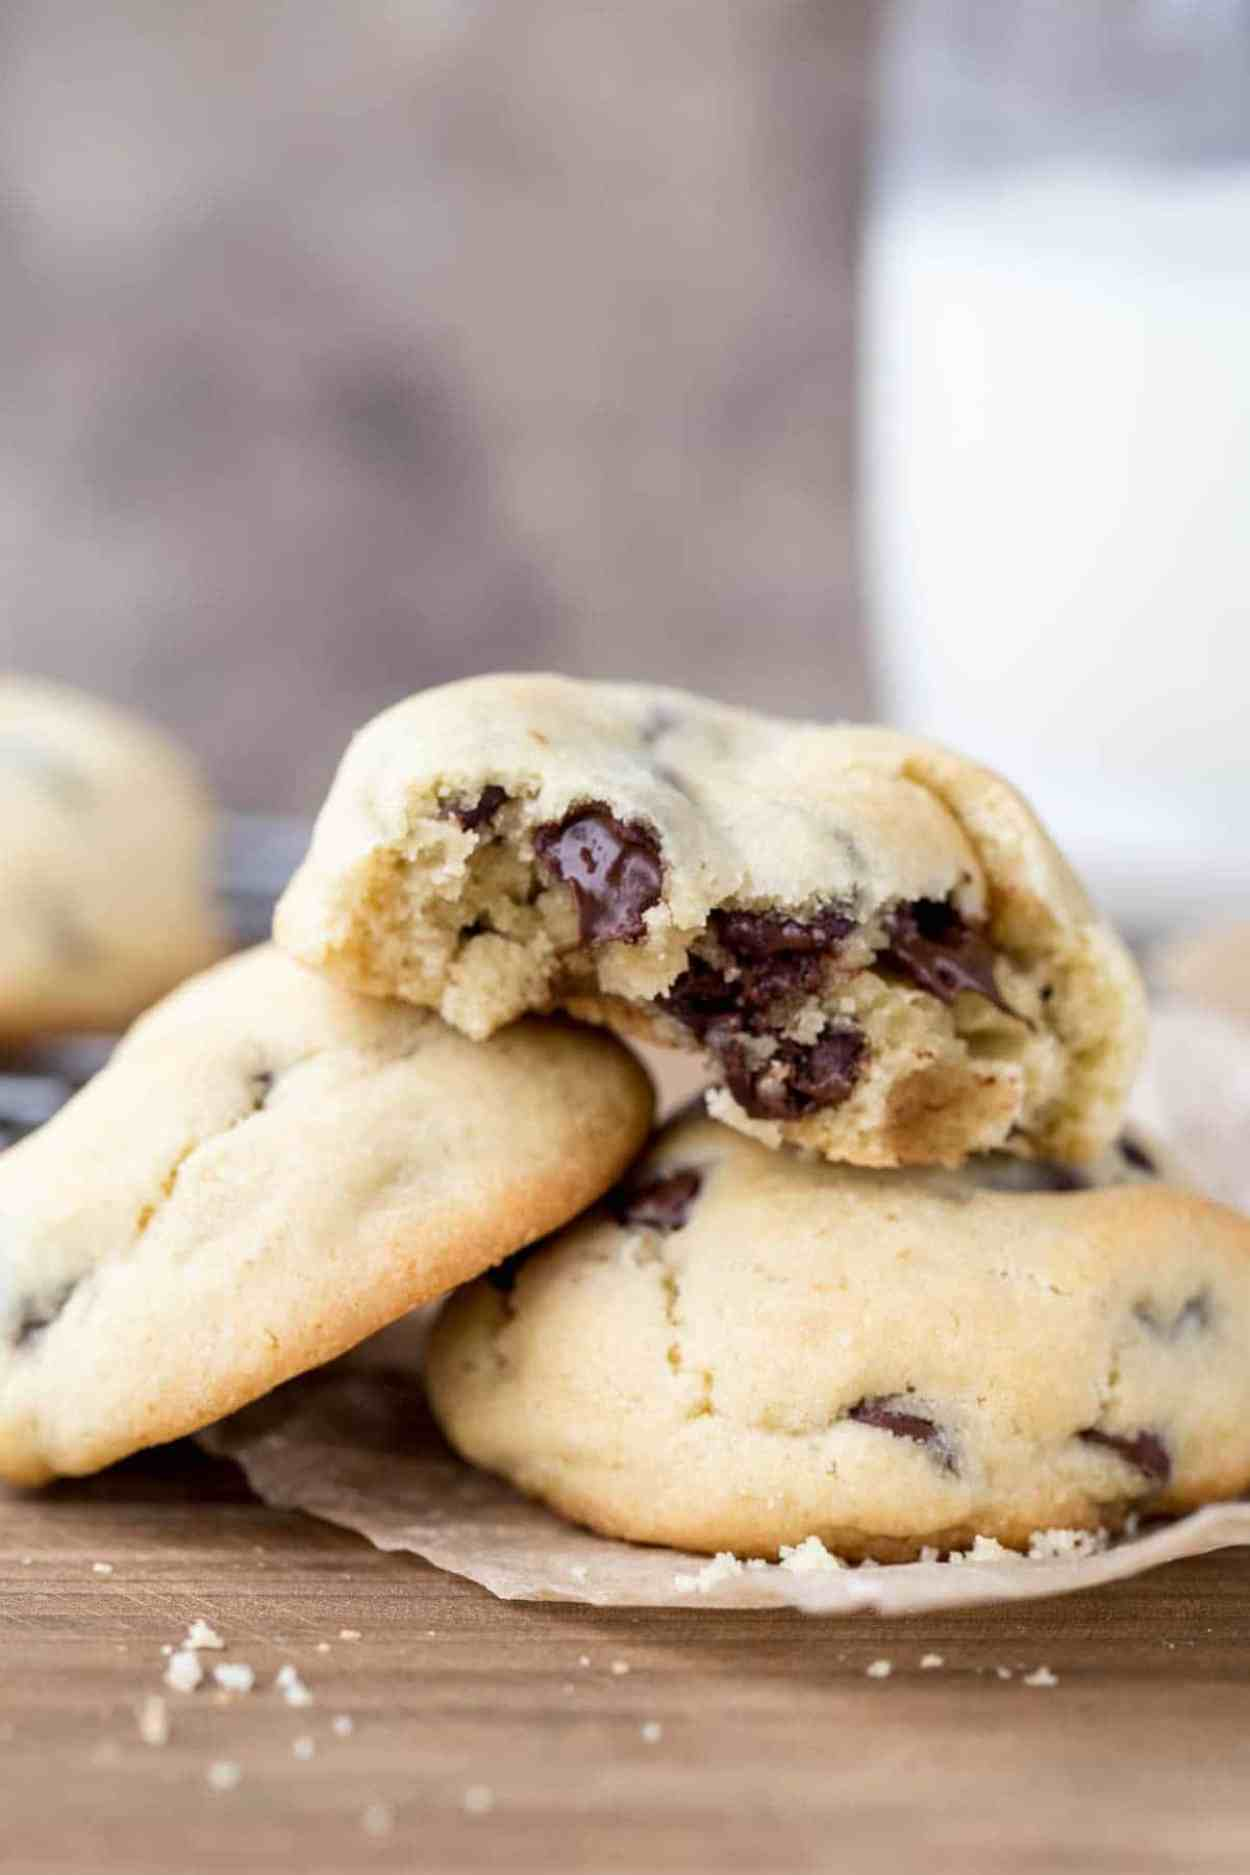 Chocolate chip cookies stacked on top of each other with chocolate chip morsels.